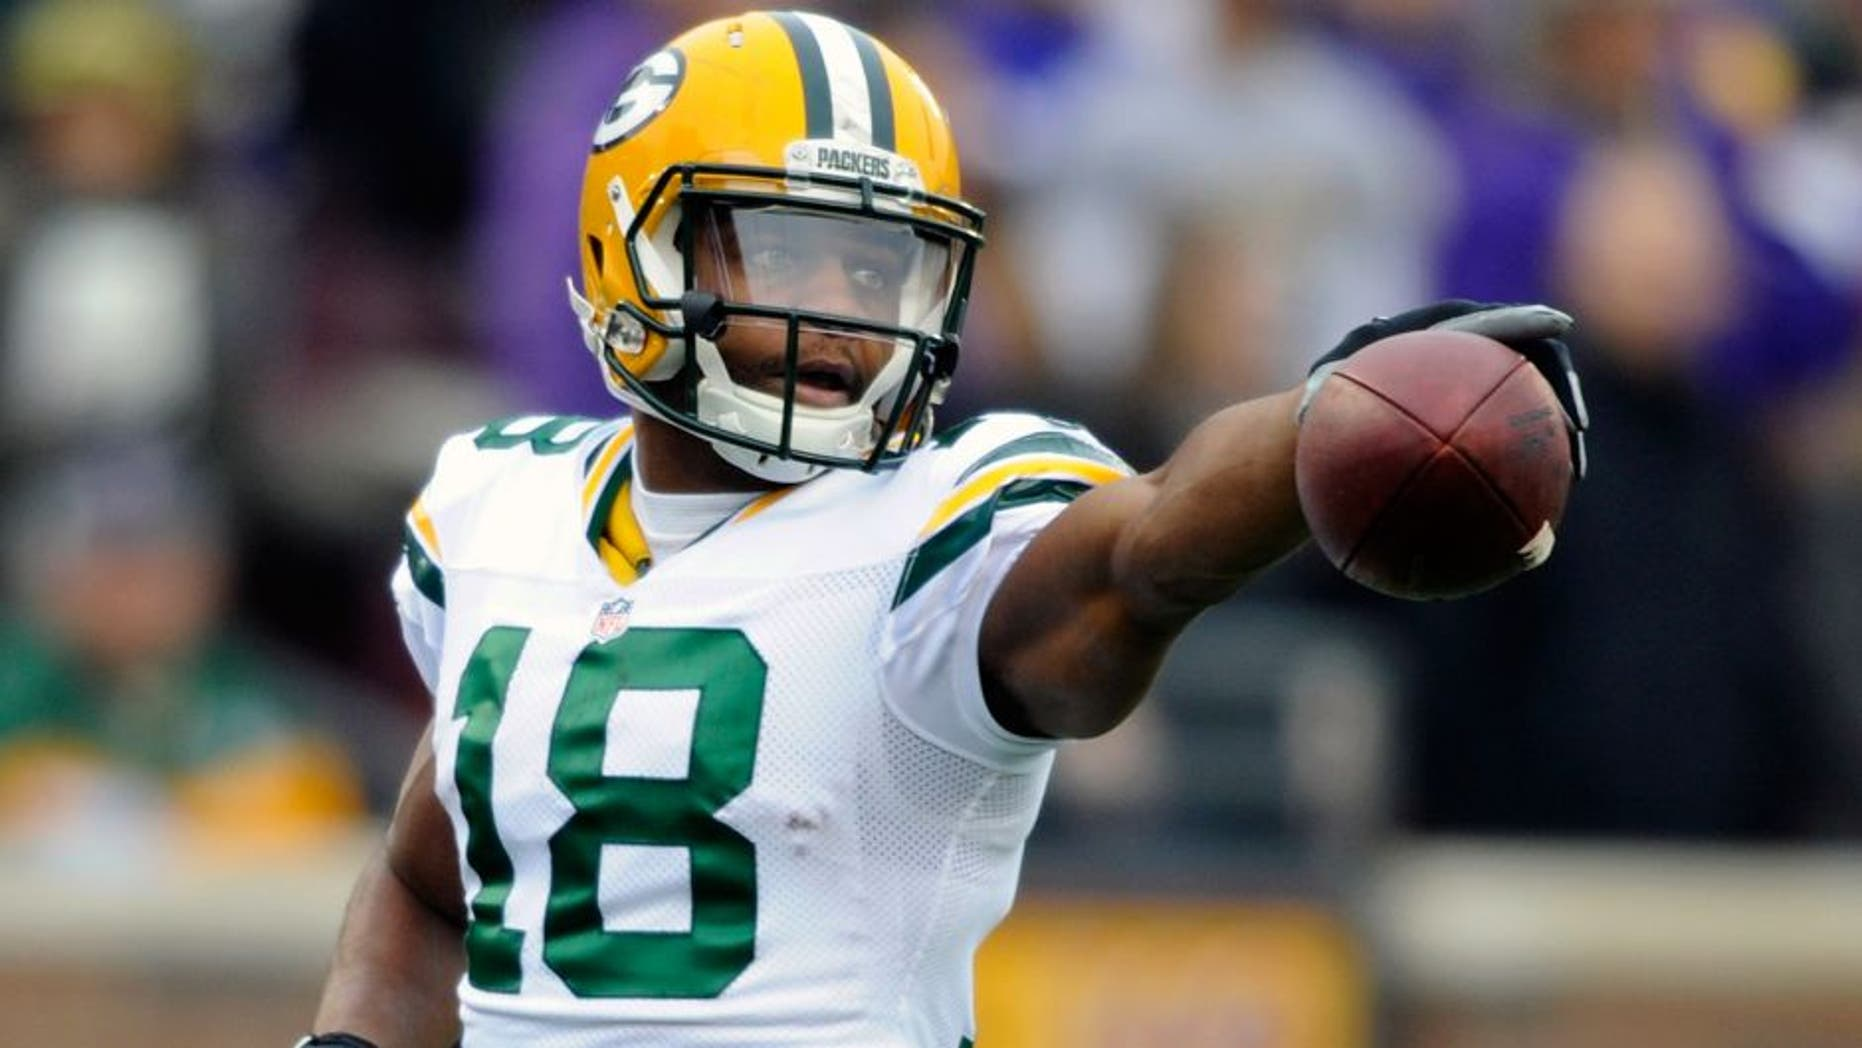 MINNEAPOLIS, MN - NOVEMBER 23: Randall Cobb #18 of the Green Bay Packers celebrates a play against the Minnesota Vikings during the first quarter of the game on November 23, 2014 at TCF Bank Stadium in Minneapolis, Minnesota. The Packers defeated the Vikings 24-21. (Photo by Hannah Foslien/Getty Images)